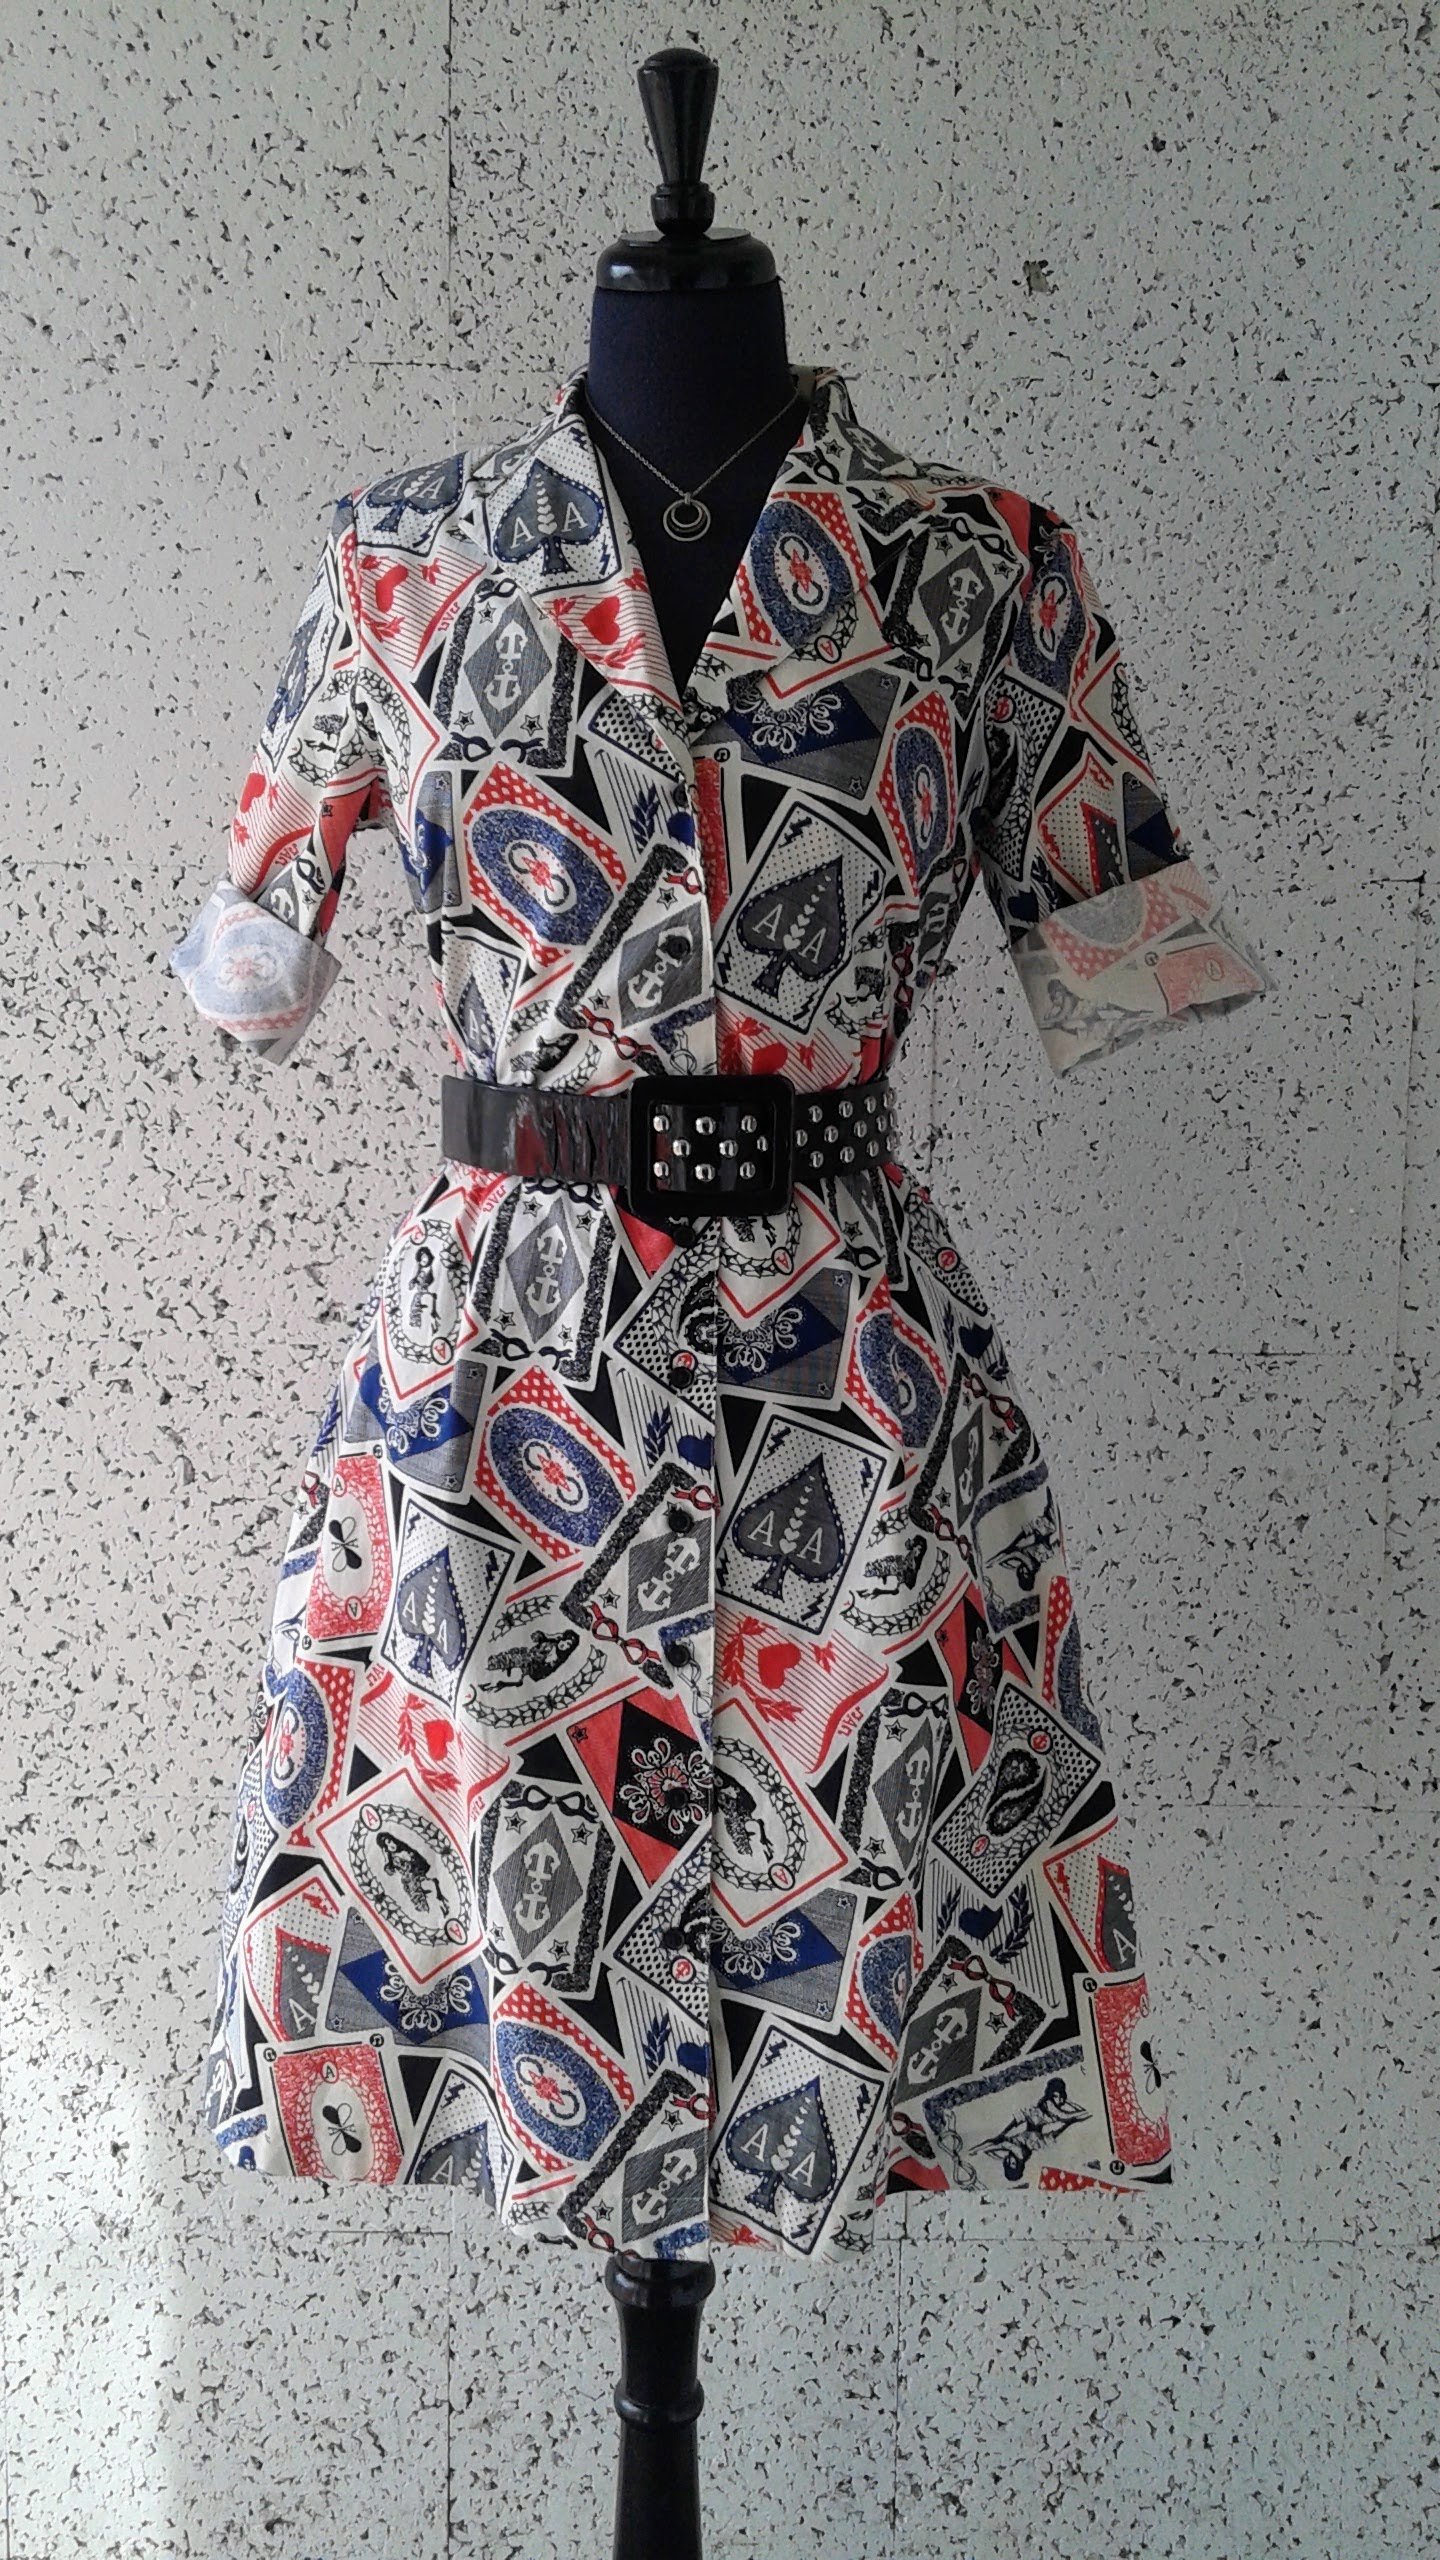 Fred Perry x Amy Winehouse Foundation dress; Size 10, $40. Betsy Johnson belt, $32